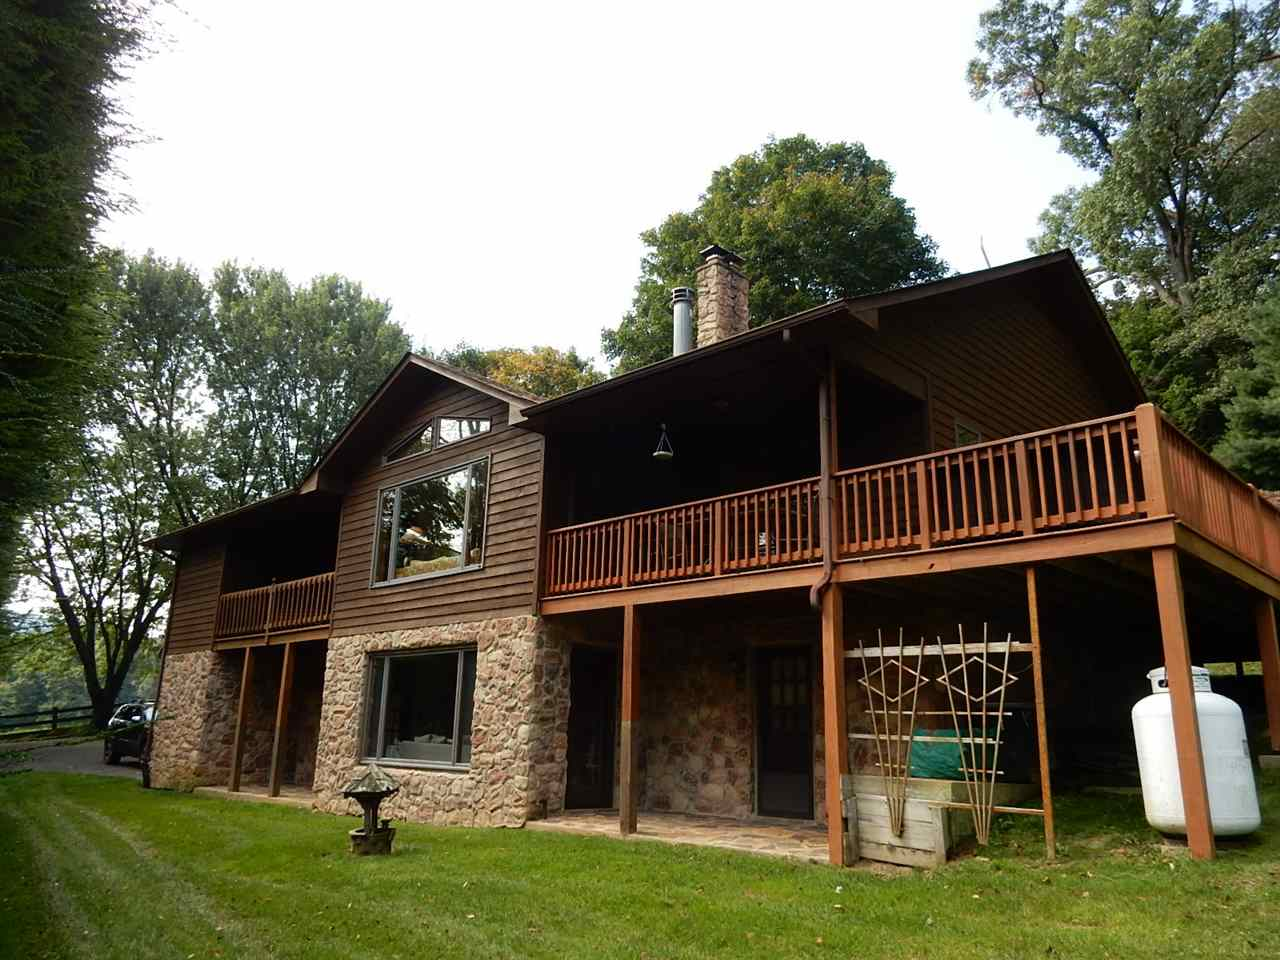 3836 DUNNS GAP RD, HOT SPRINGS, VA 24445